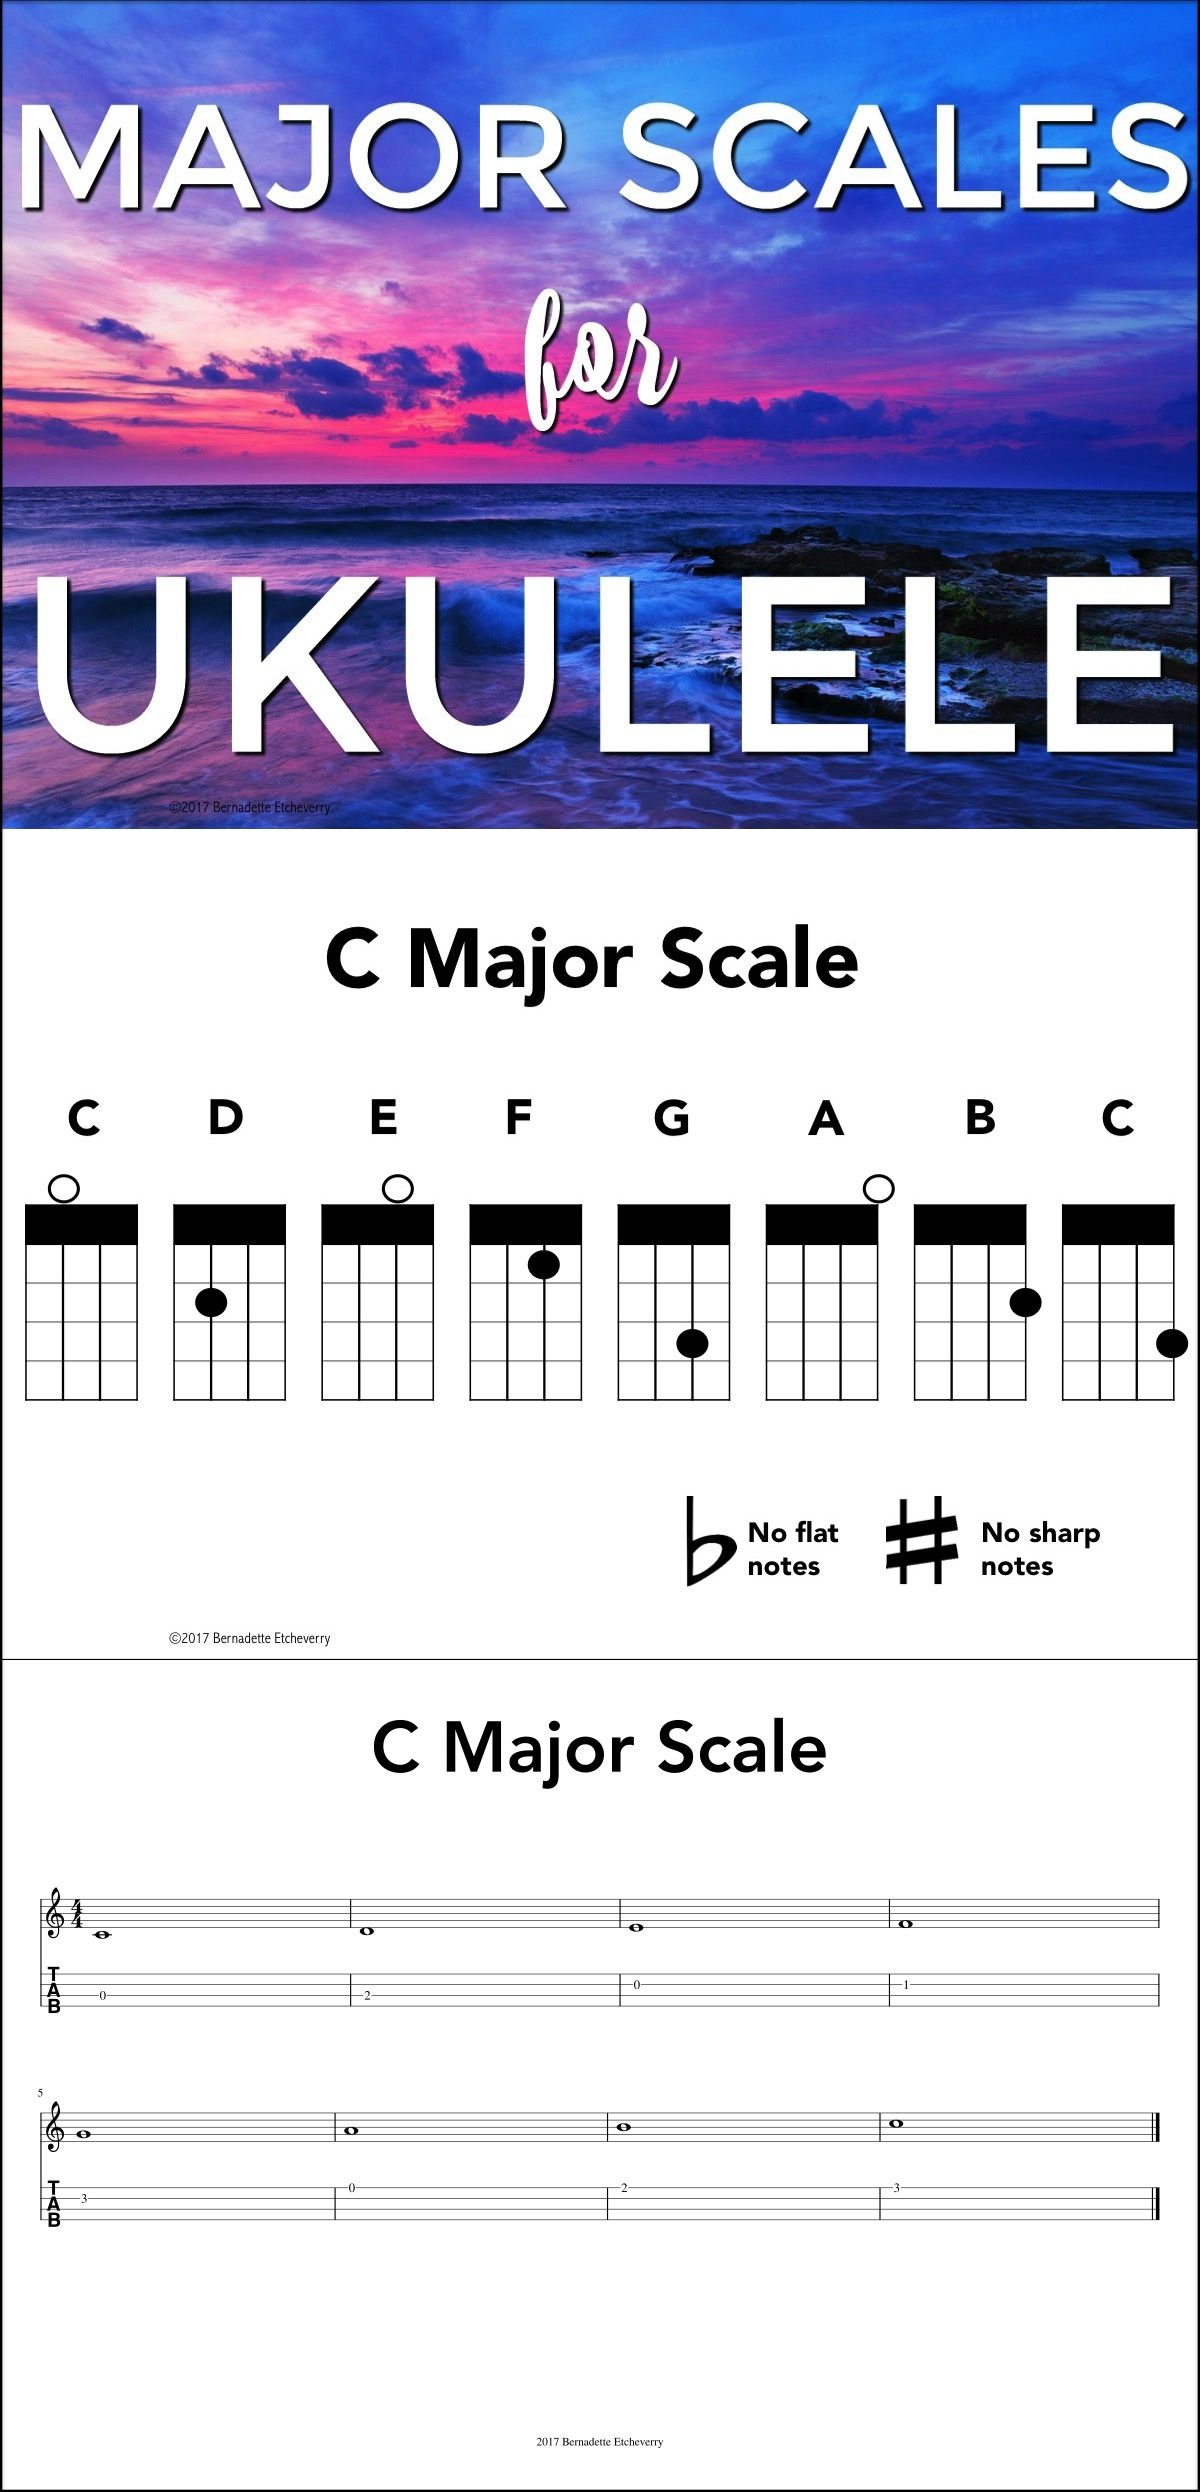 Printable Ebook All Major Scales For Ukulele Music Education Howtoreadchorddiagramschartjpg Fingering Charts Tablature And Notation Easy Transitioning Students Into Reading My Kids Love This So Far